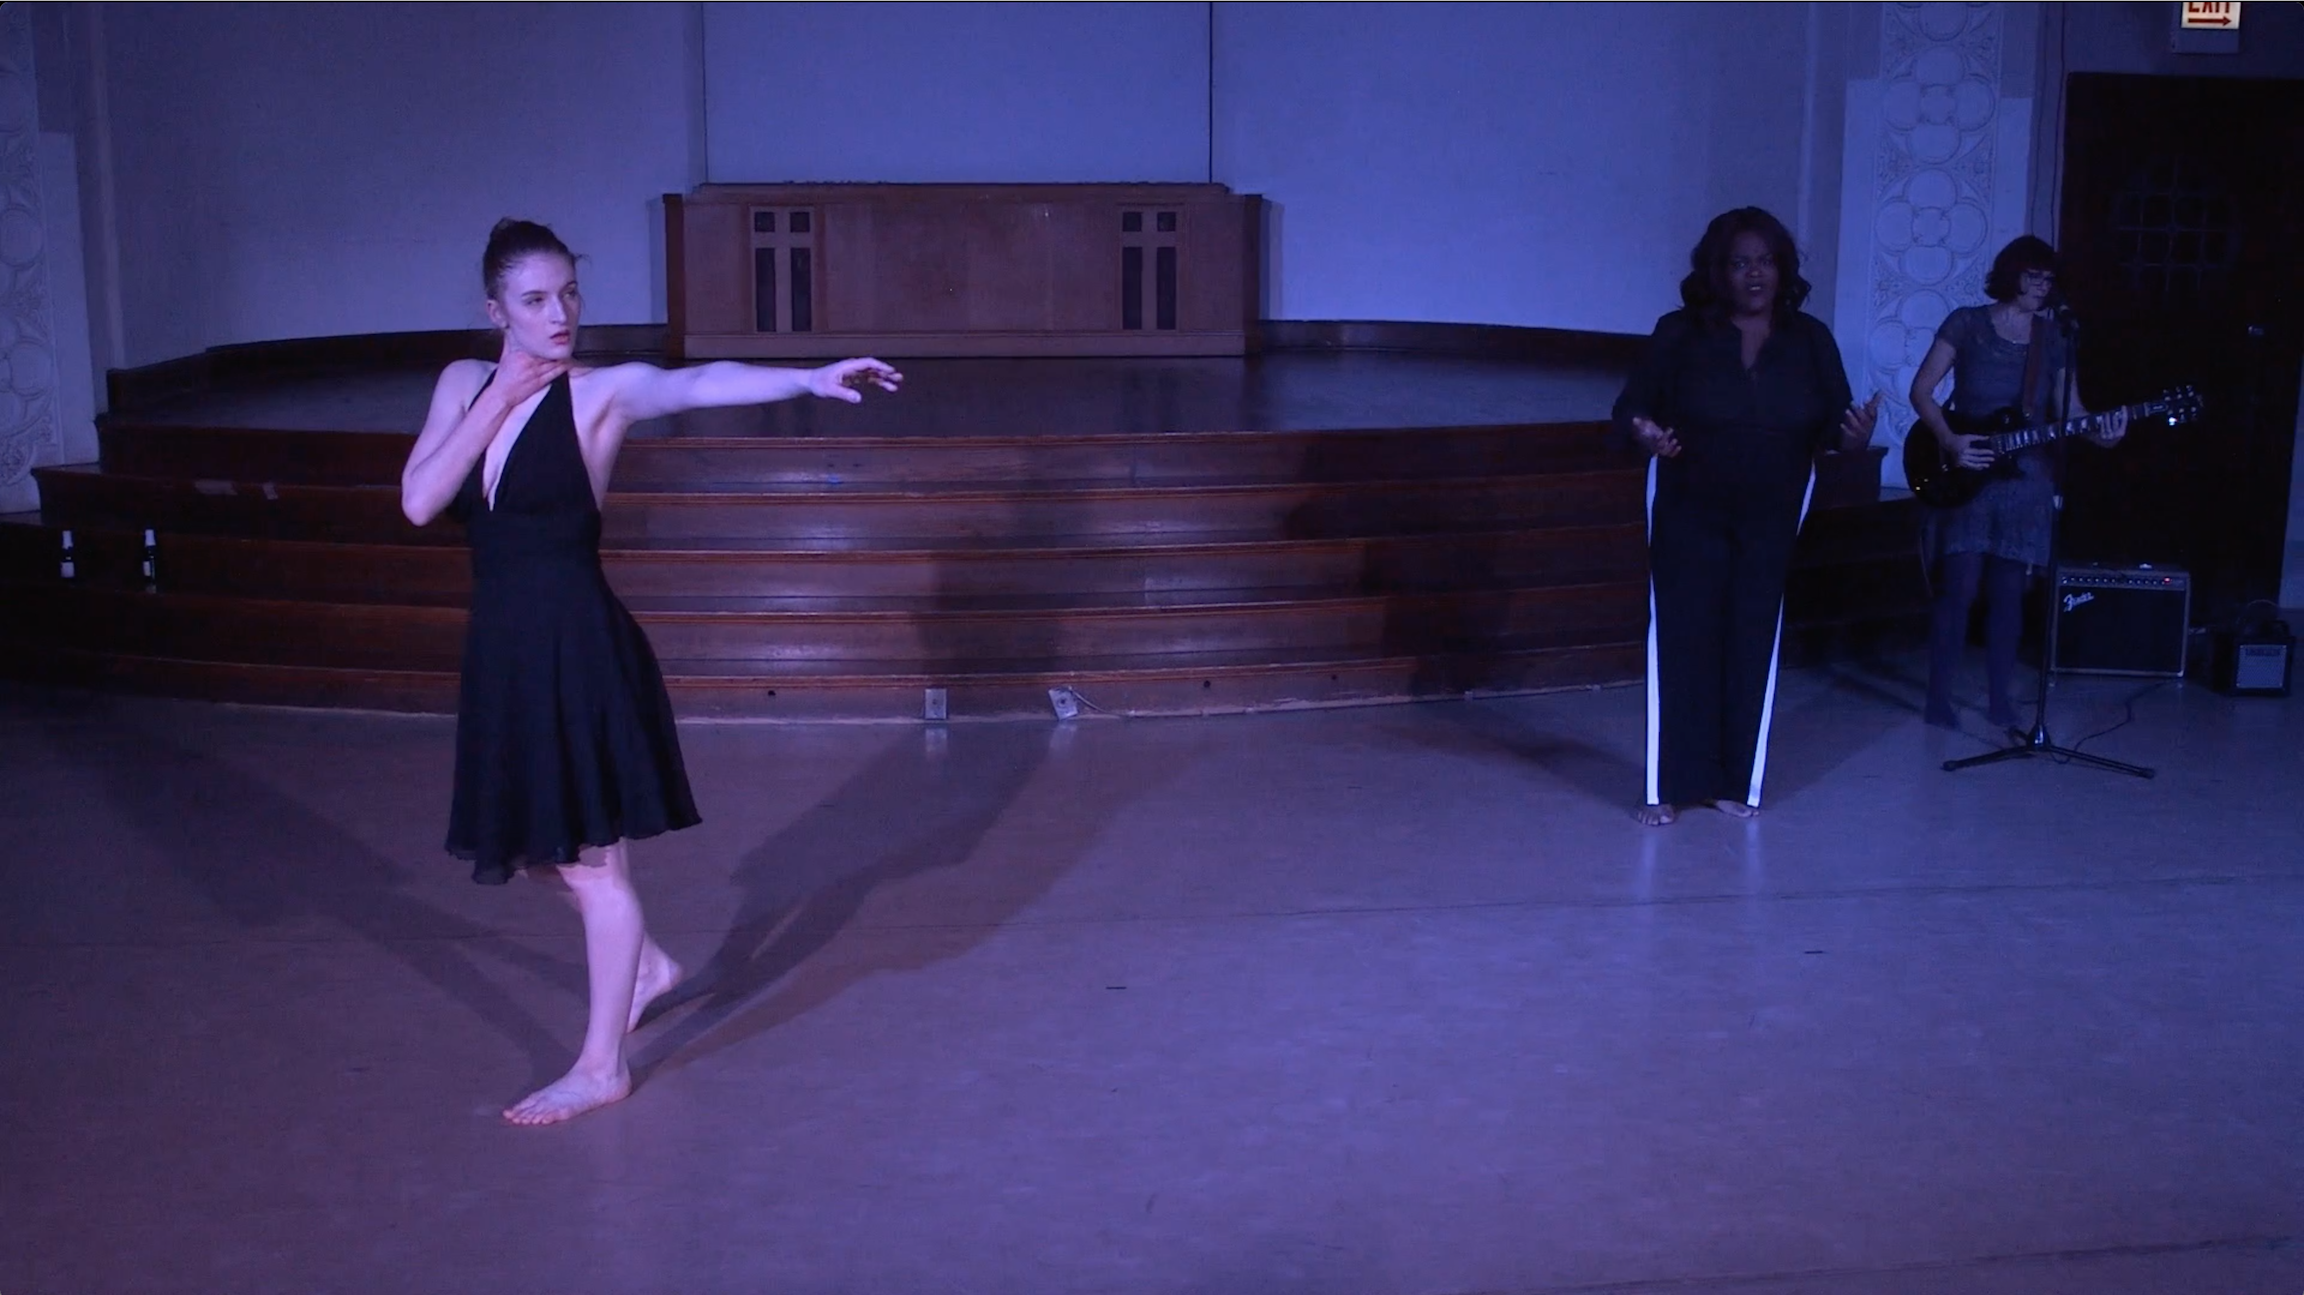 "Image: Carly Broutman, Jae Green, and Michelle Shafer performing in ""Wax."" In the foreground, Carly steps forward, with one hand on her throat and her other arm stretched across the frame, her face looking that way too. In the back corner, Jae speaks, palms up in a gesture, as Michelle plays electric guitar. The lighting is dim and cool (blue-purple). Still from a video by John Borowski."